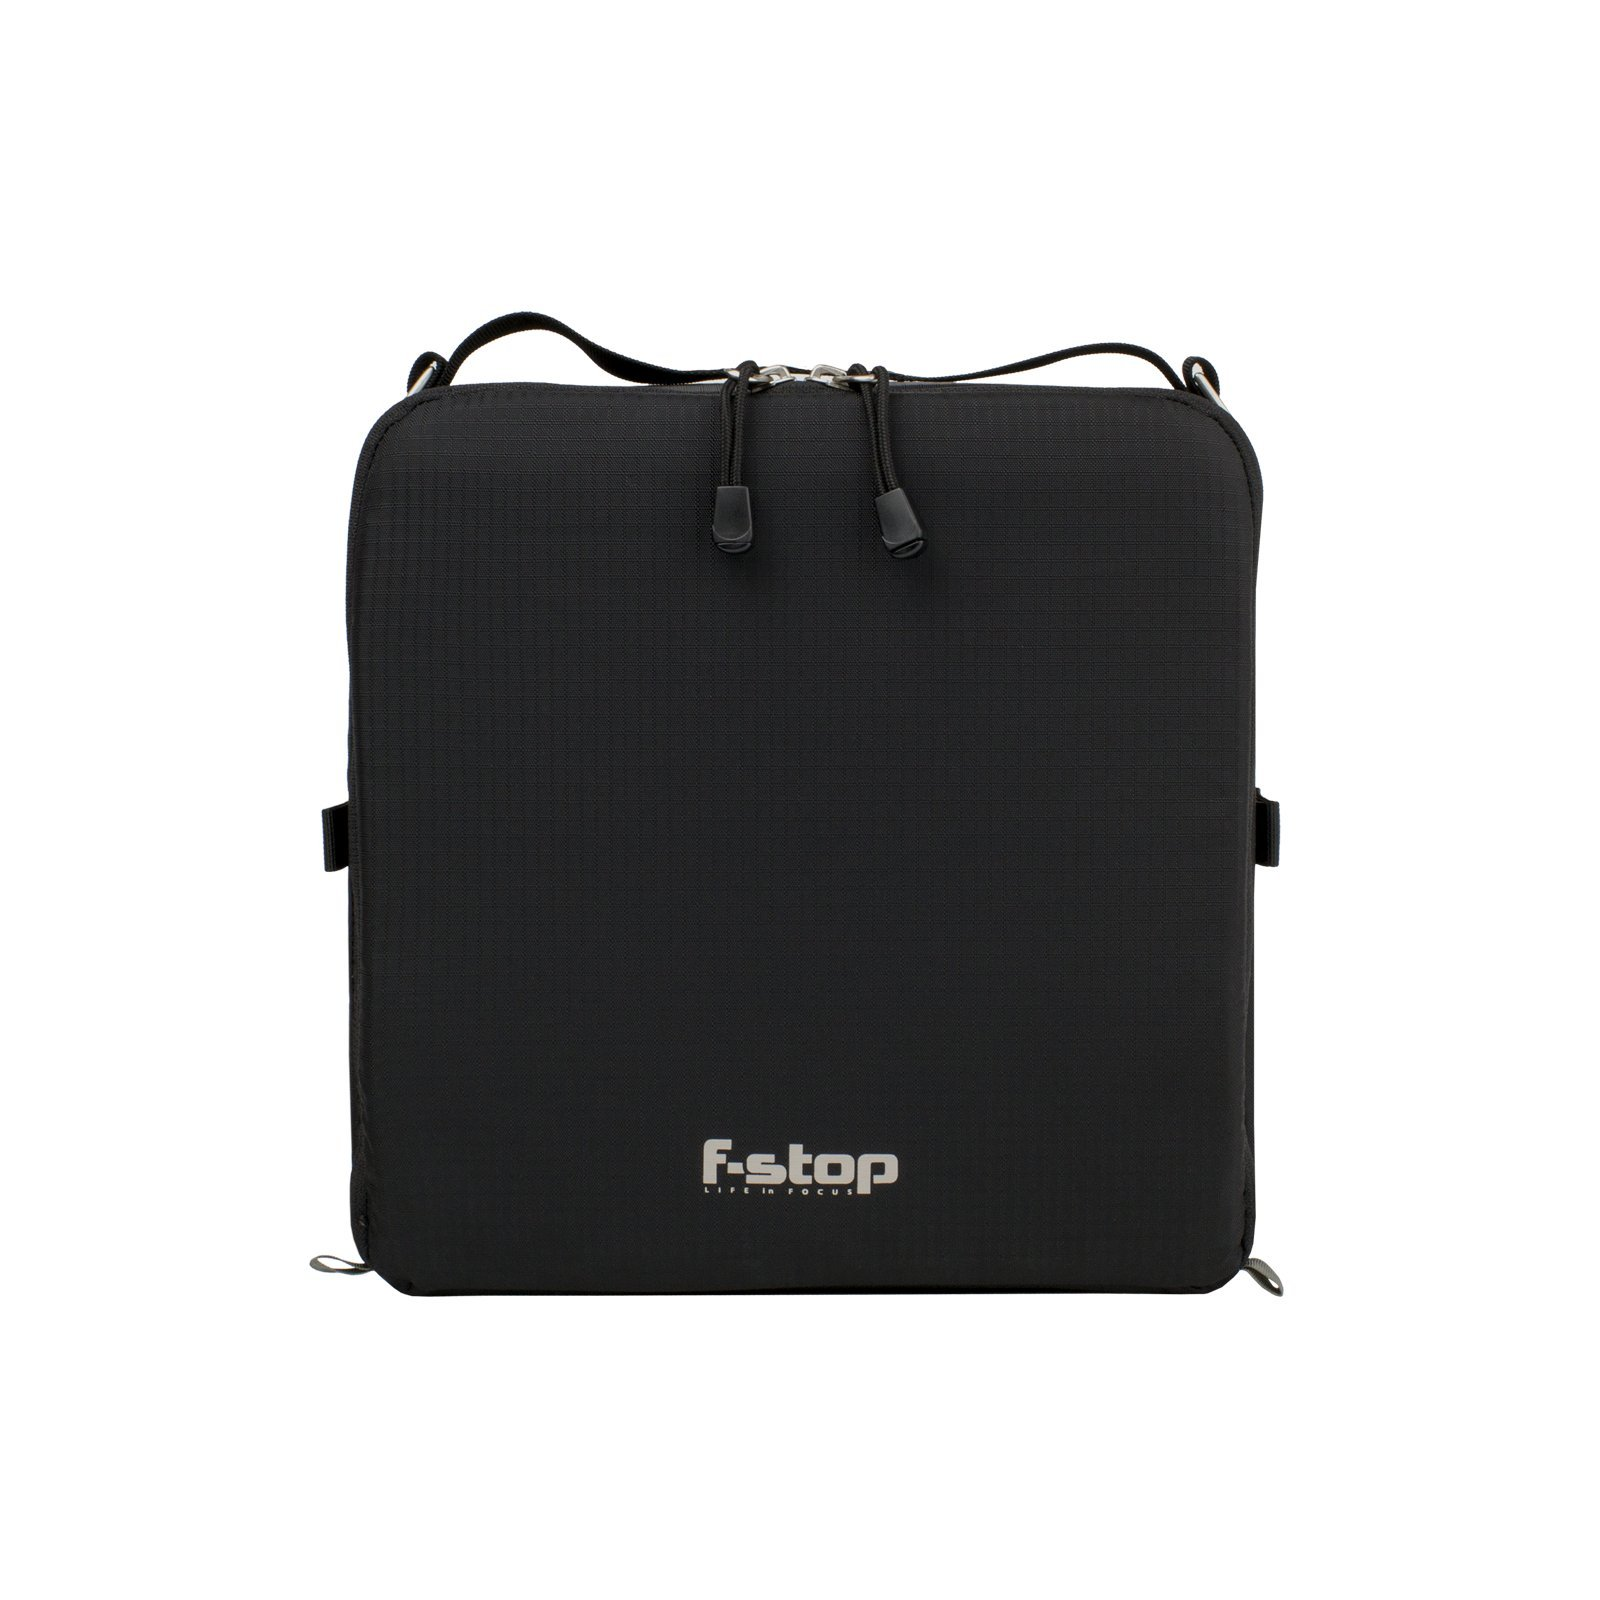 f-stop - Medium Slope ICU (Internal Camera Unit - 5''D Top 7''D Bottom x 11.5''W x 11''H) Protection Storage Carry Solution for Mirrorless, DSLR, Multiple Lens Kit, Gripped Bodies by f-stop